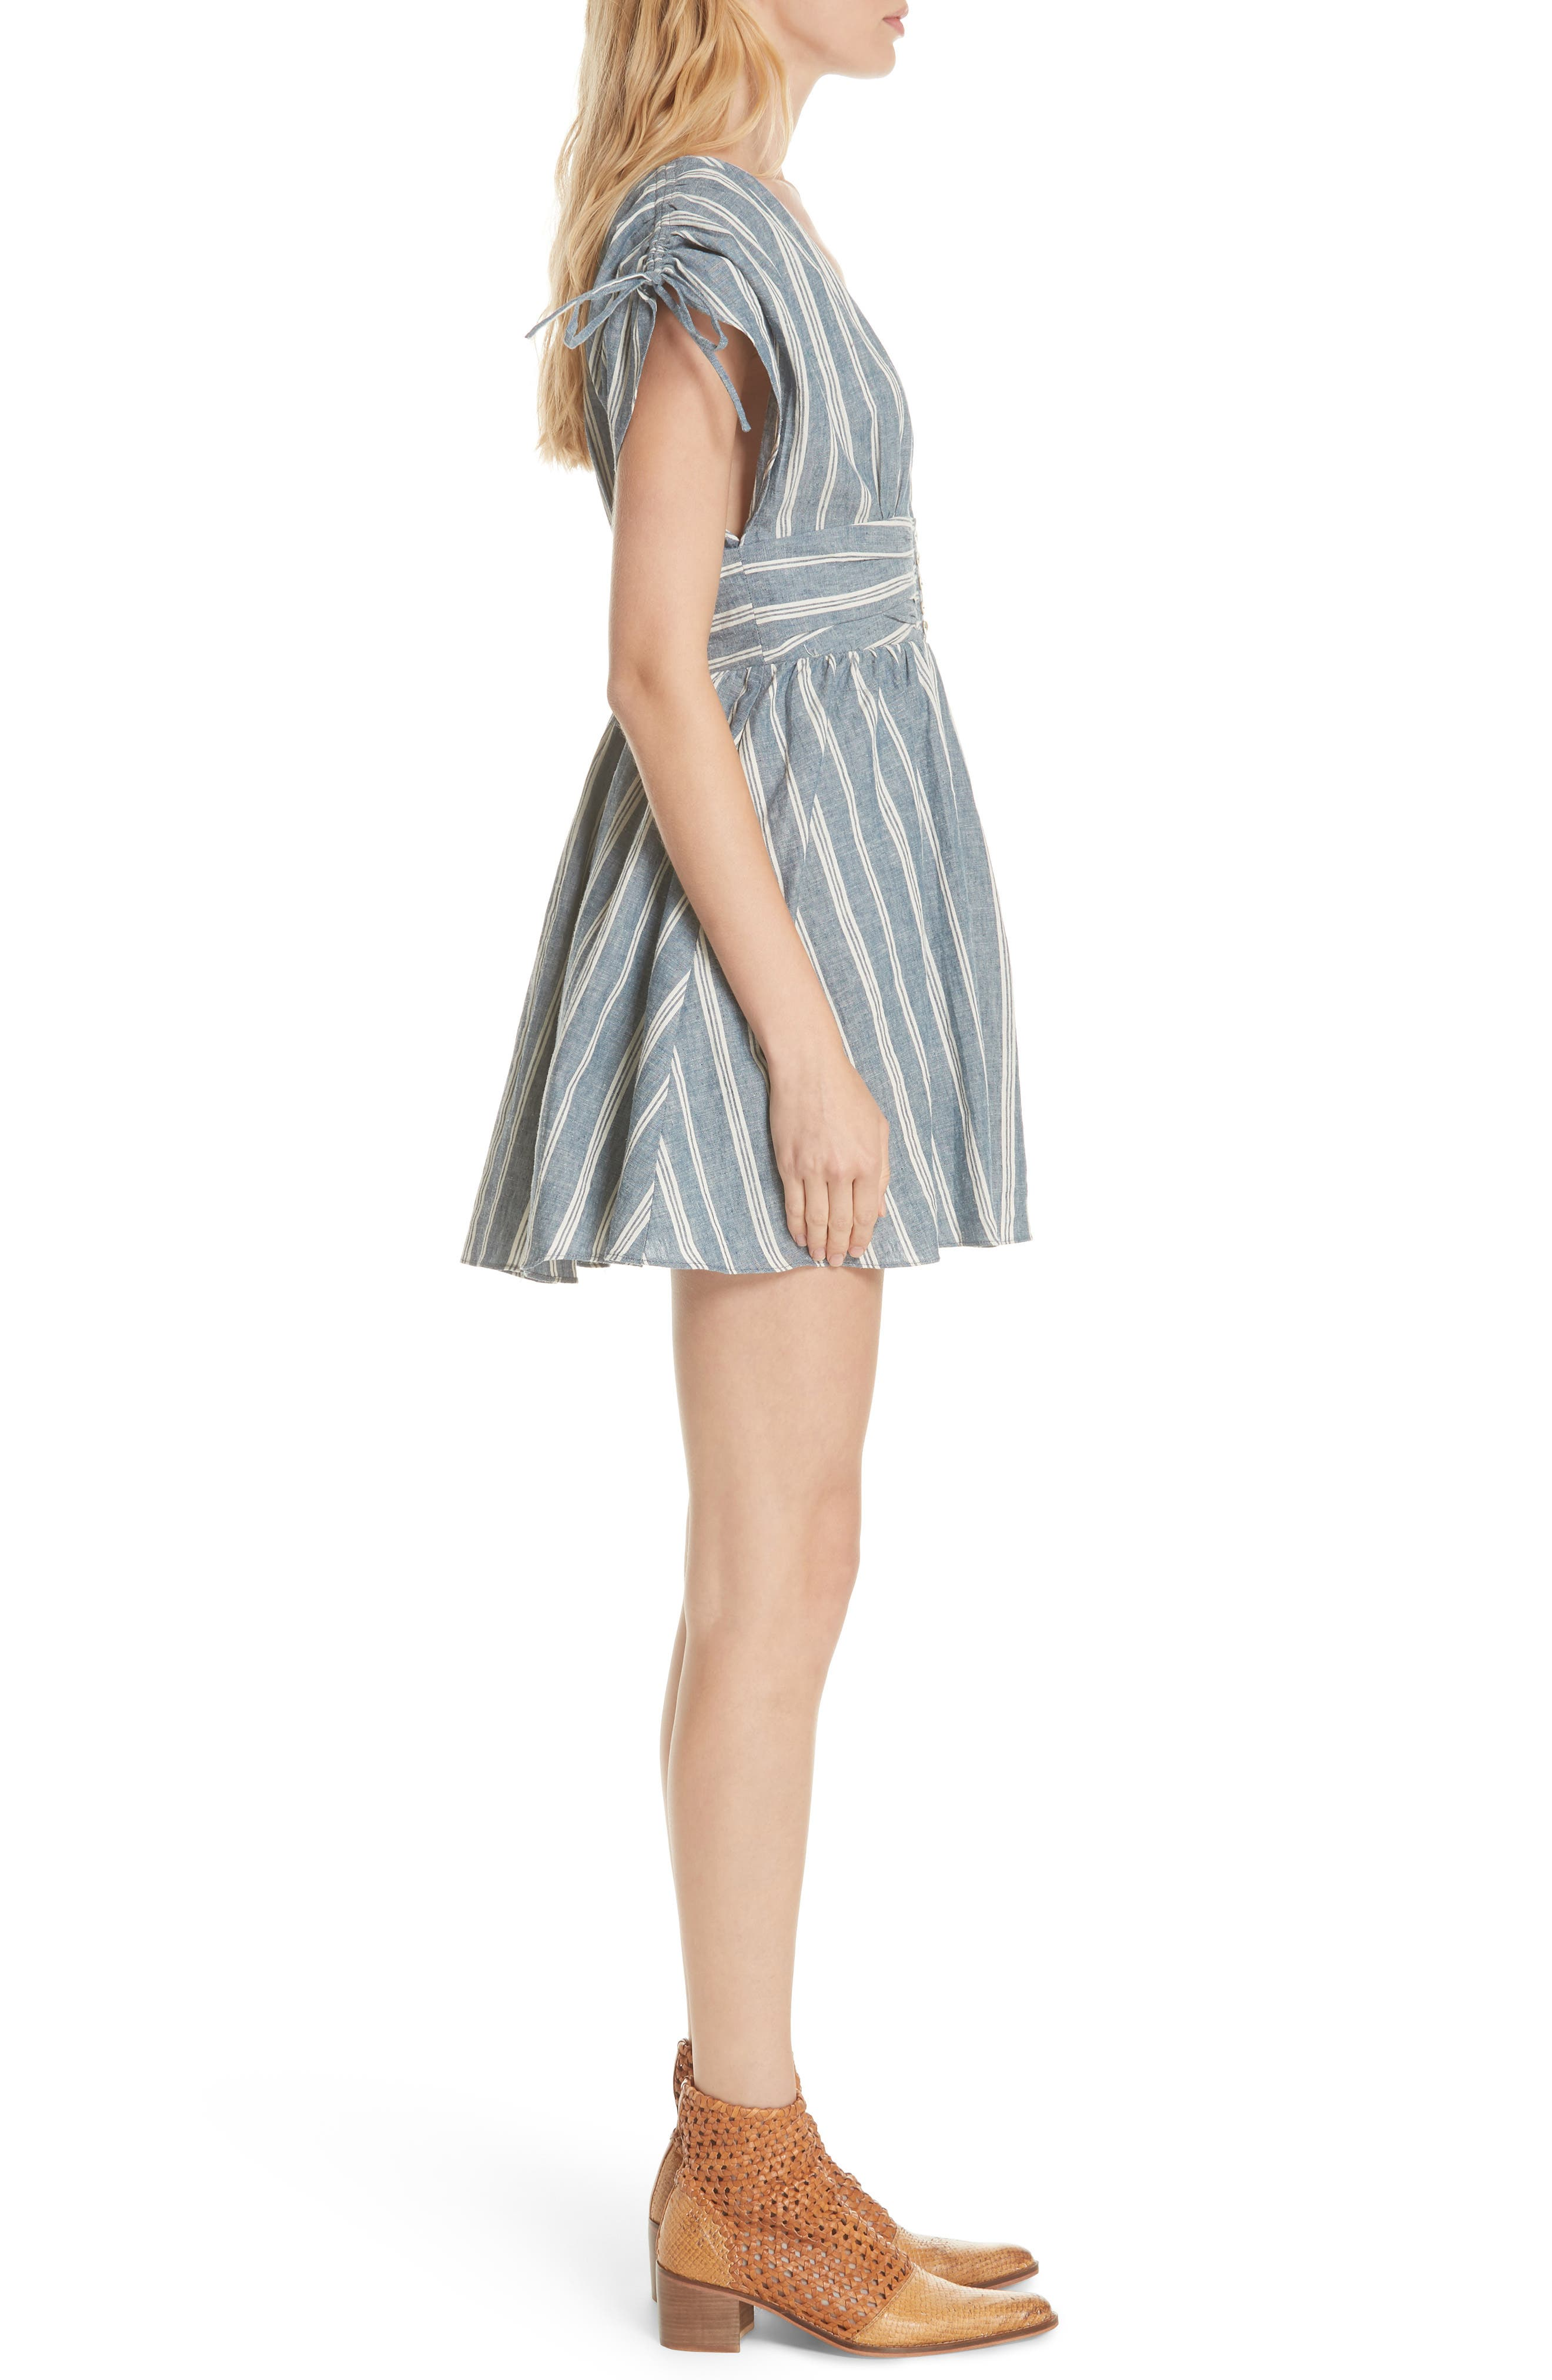 FREE PEOPLE,                             Roll the Dice Stripe Dress,                             Alternate thumbnail 3, color,                             400